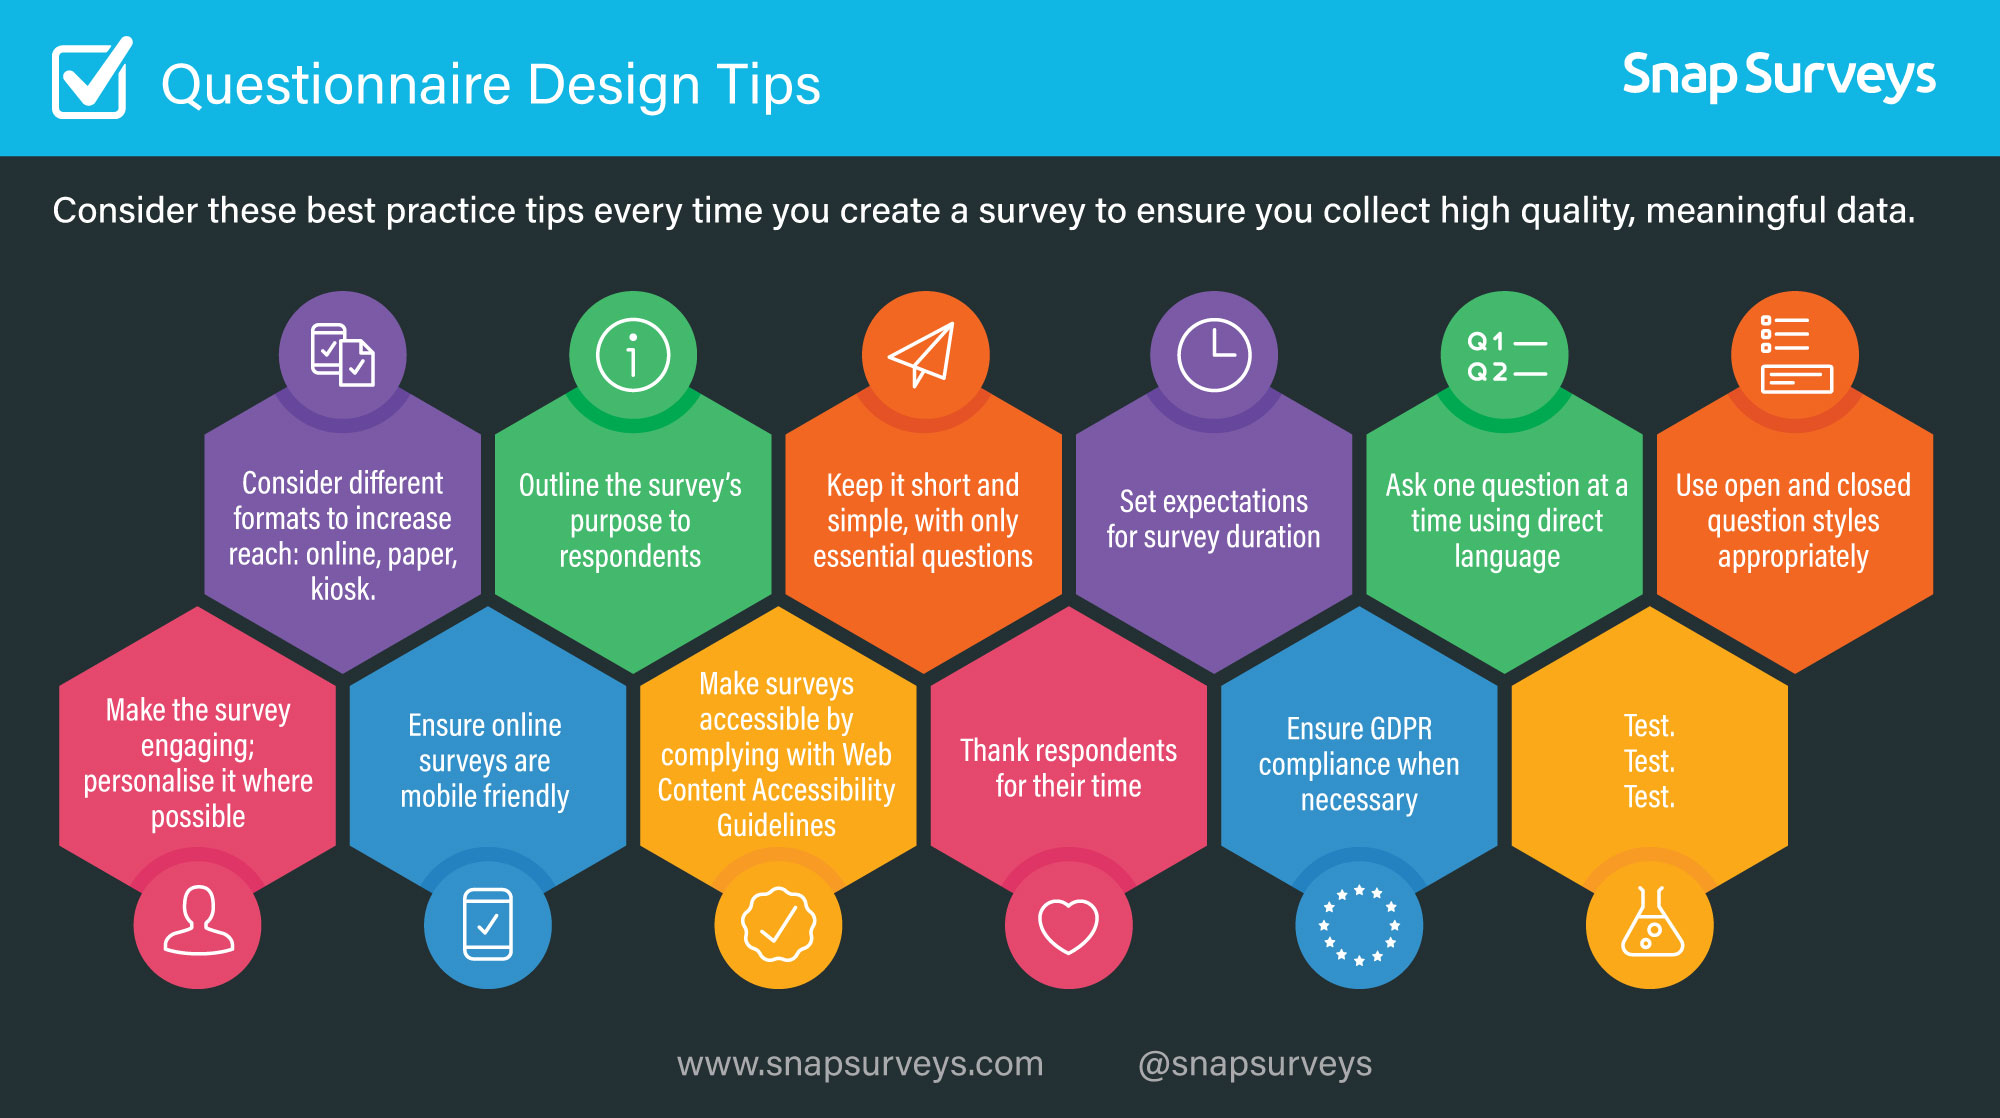 Snap Surveys Questionnaire Design Tips